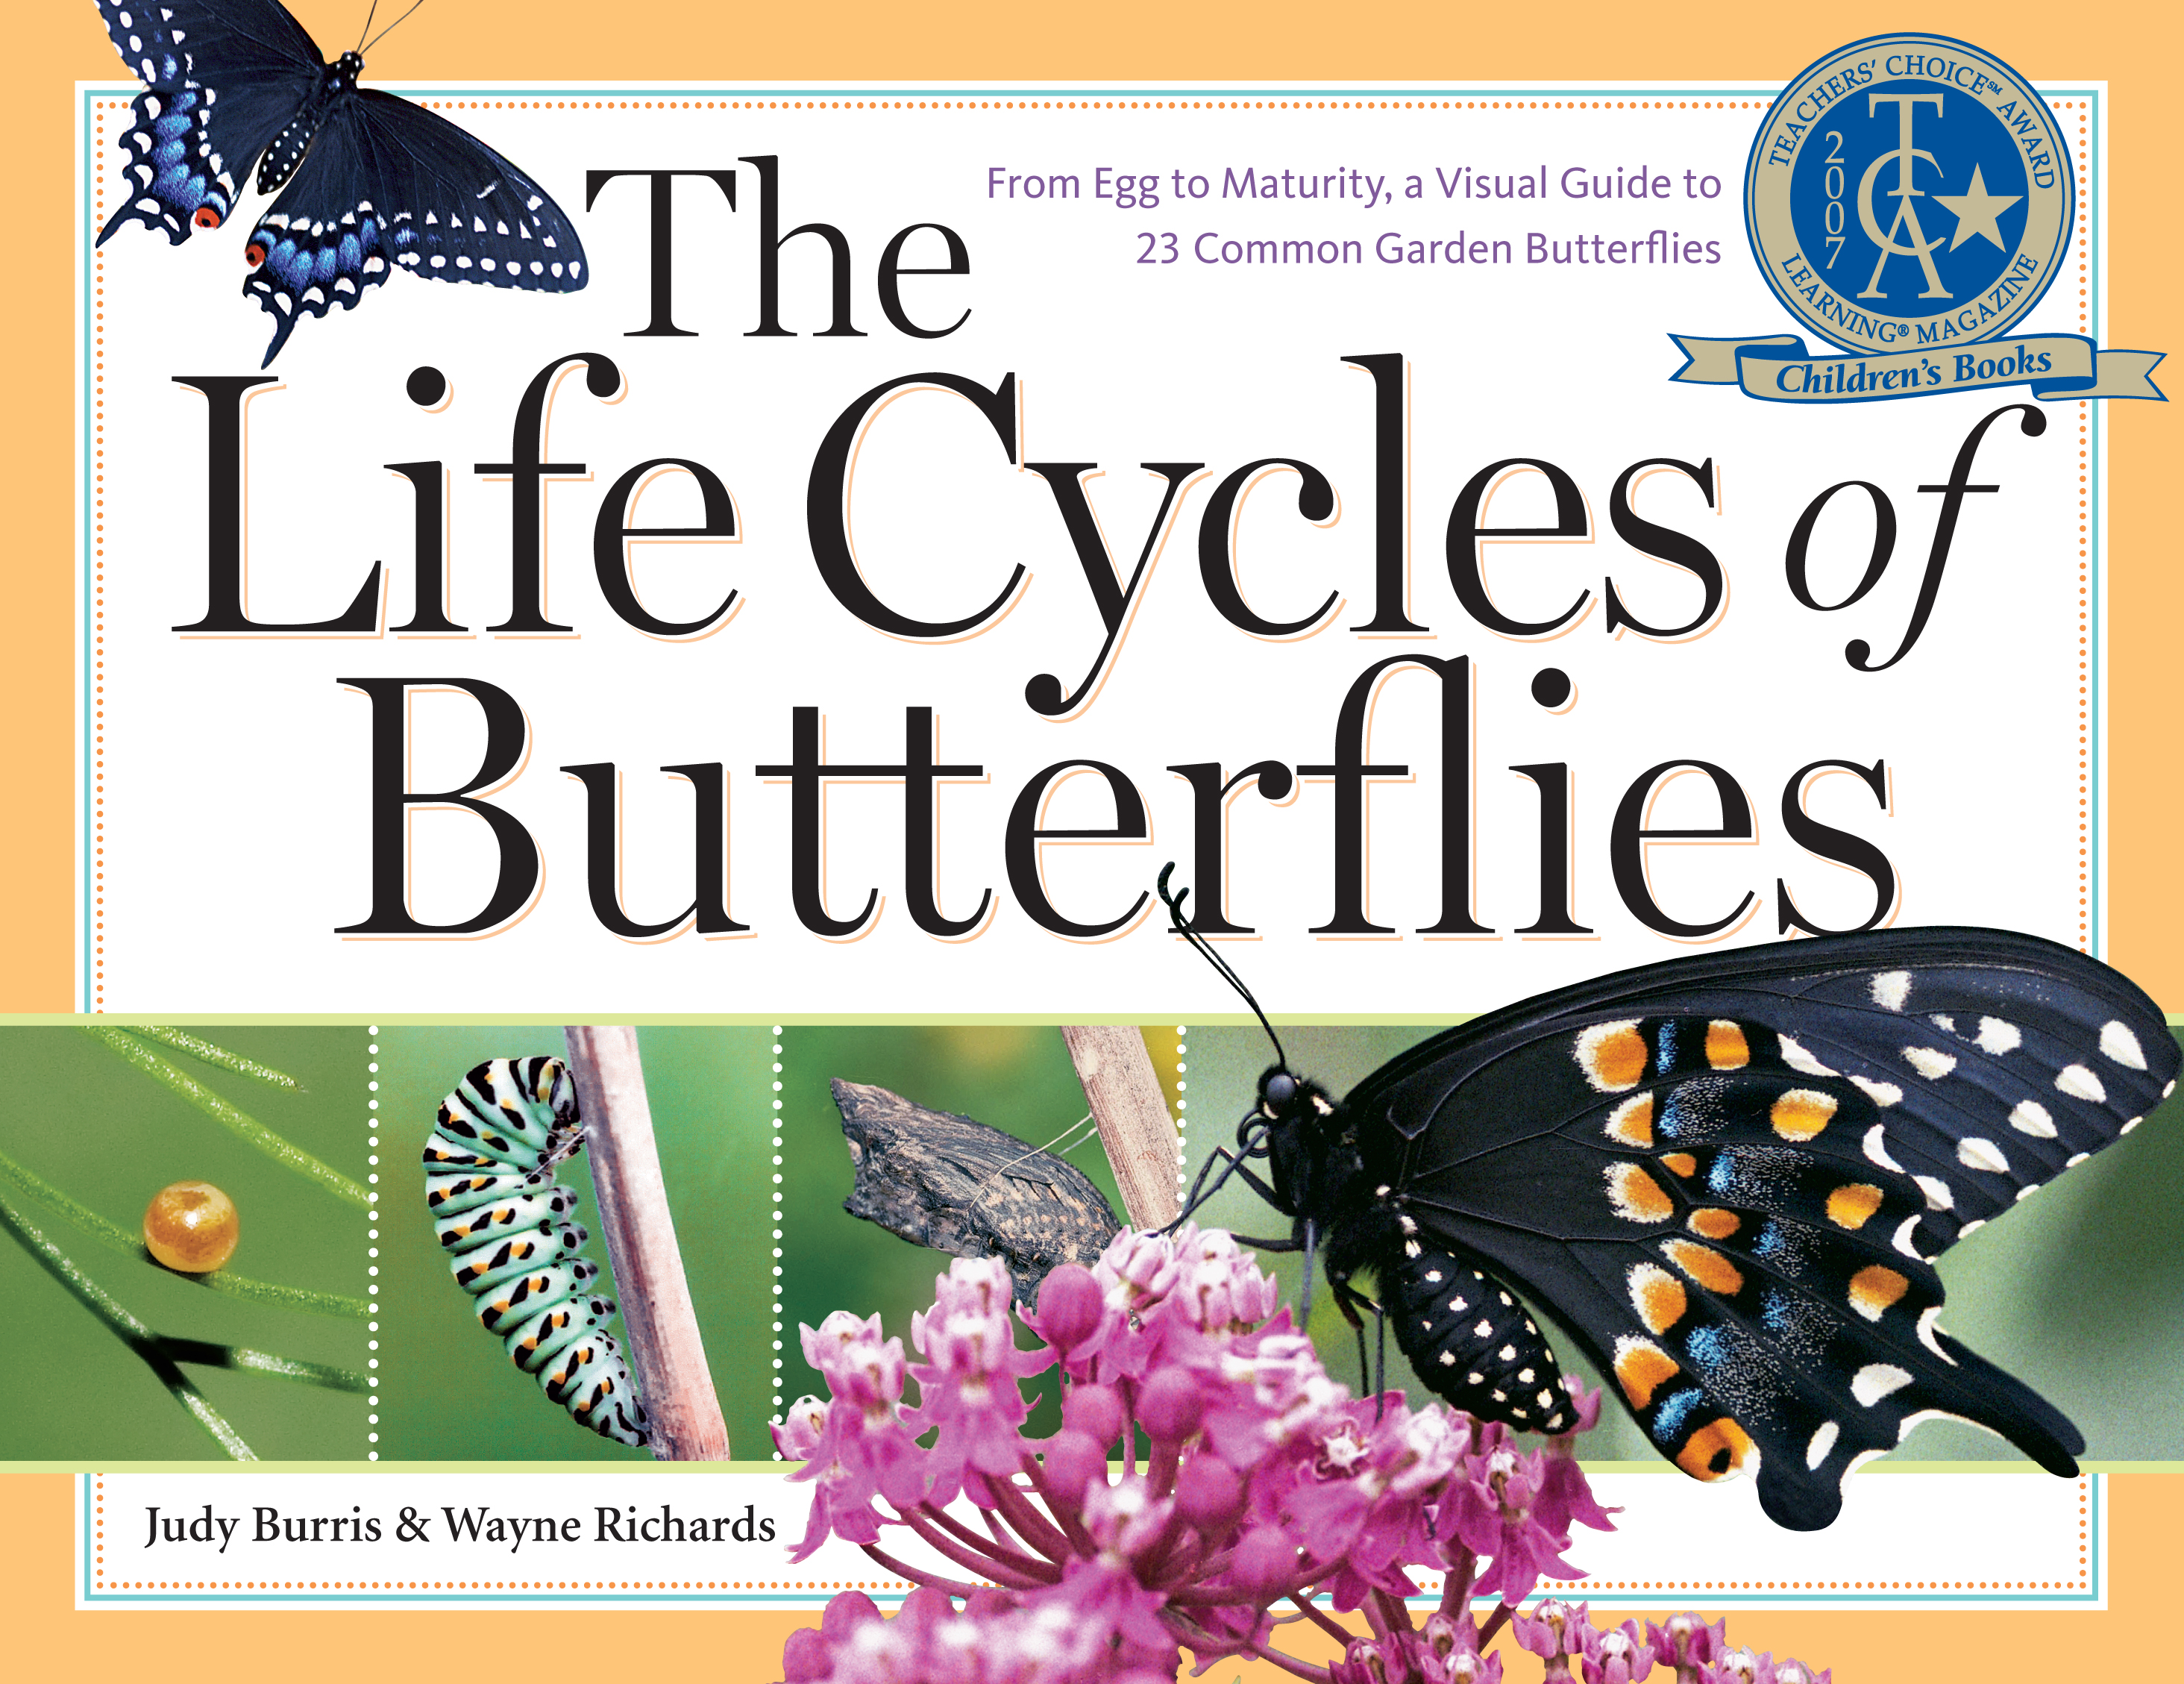 The Life Cycles of Butterflies From Egg to Maturity, a Visual Guide to 23 Common Garden Butterflies - Judy Burris